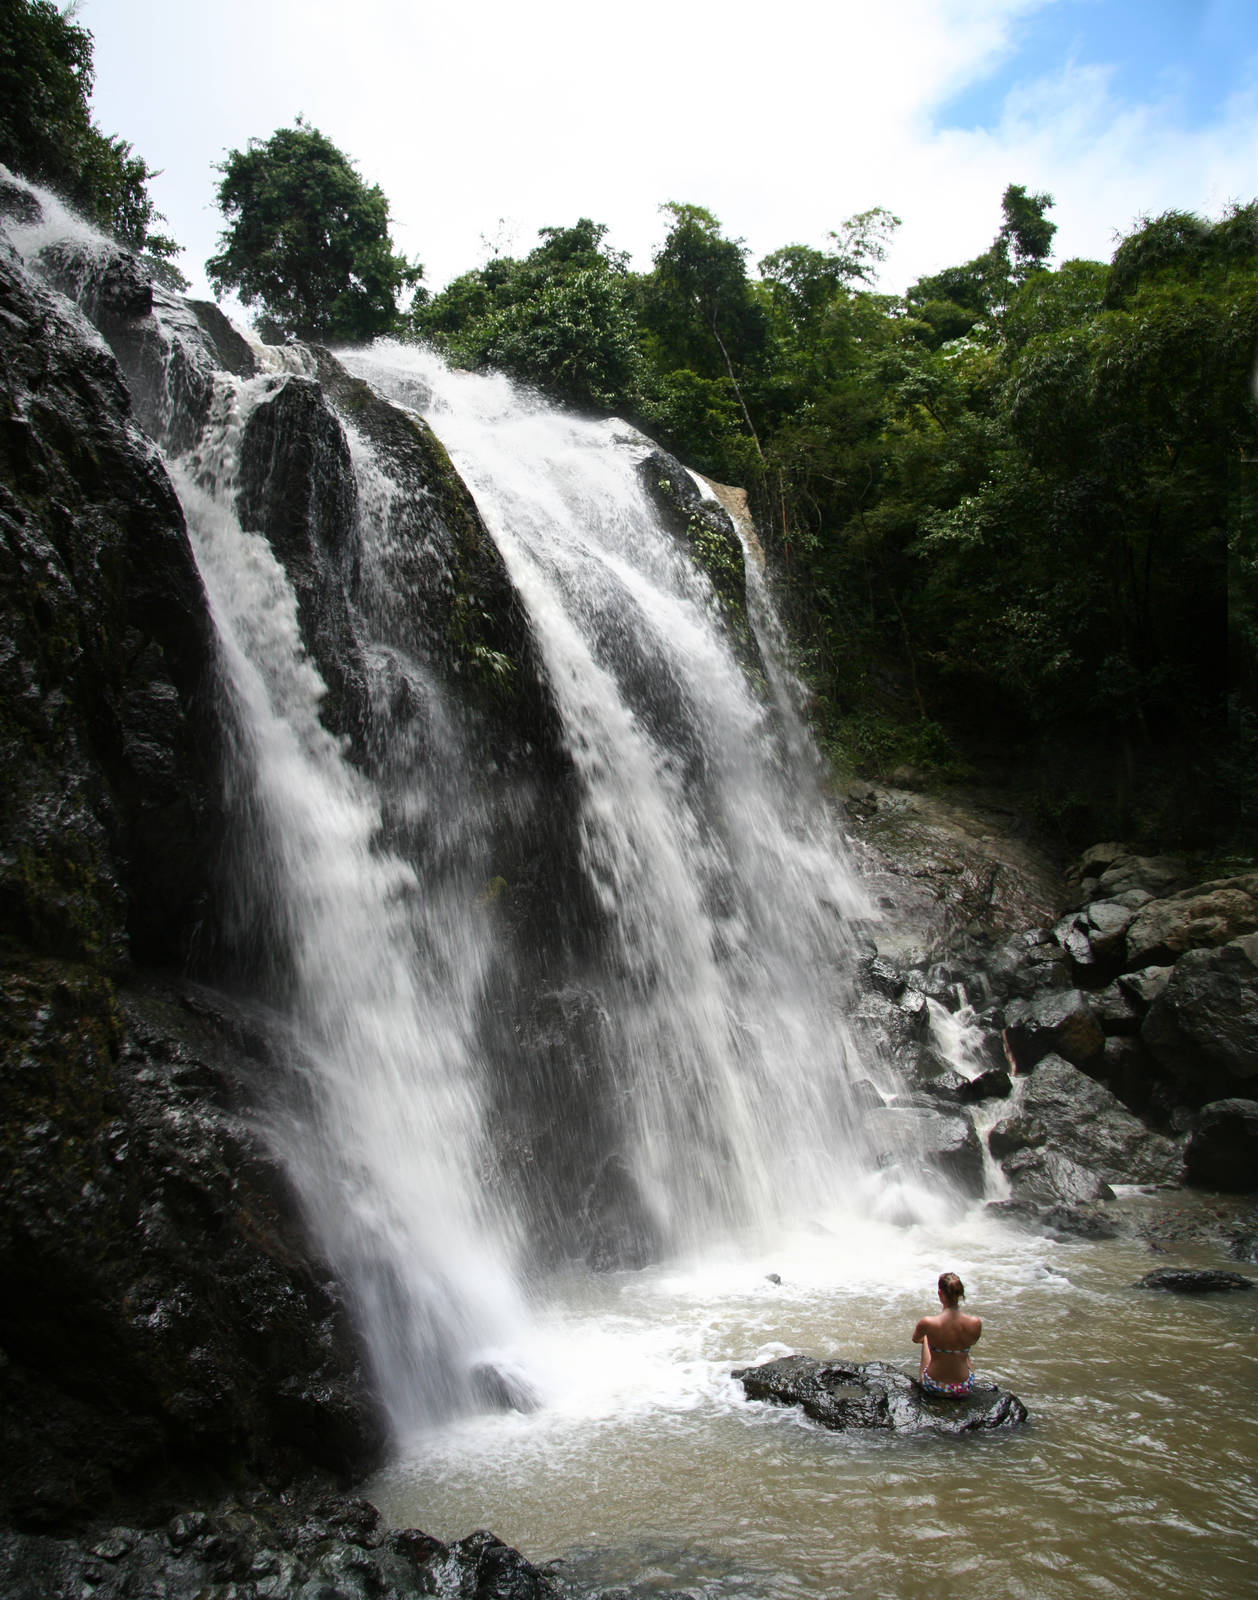 Argyle Waterfall Destination Trinidad And Tobago Tours Holidays Vacations And Travel Guide